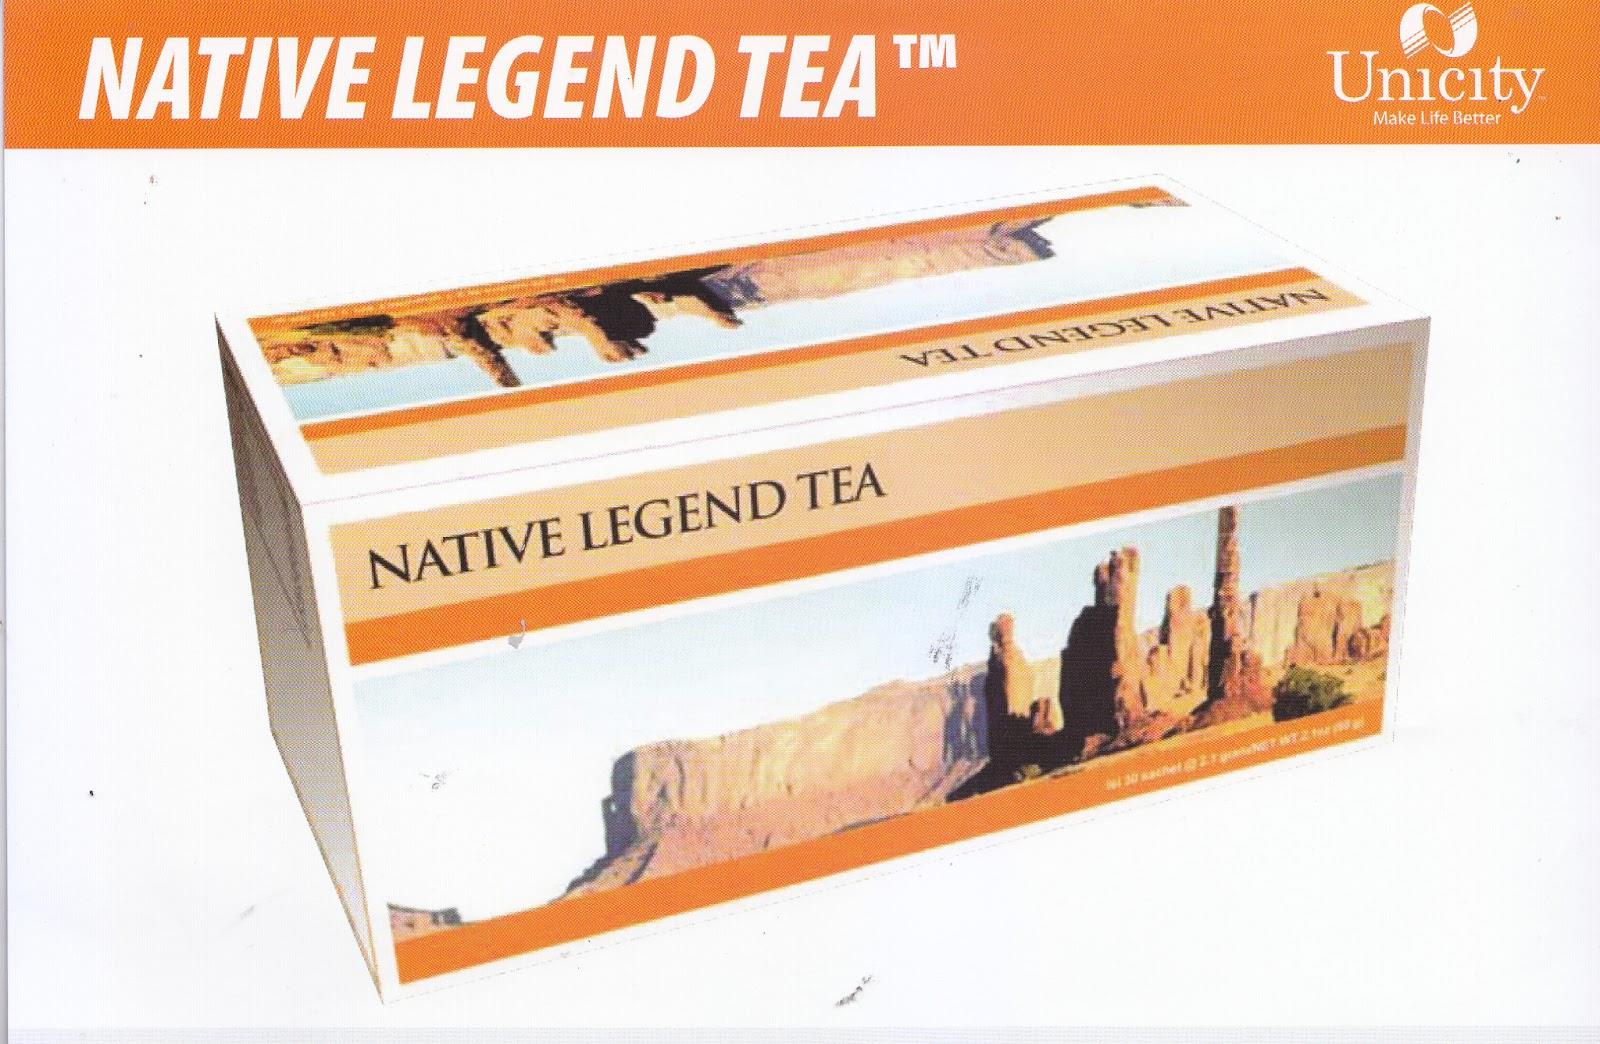 Native Legend Tea Unicity TRÀ THẢI ĐỘC GAN